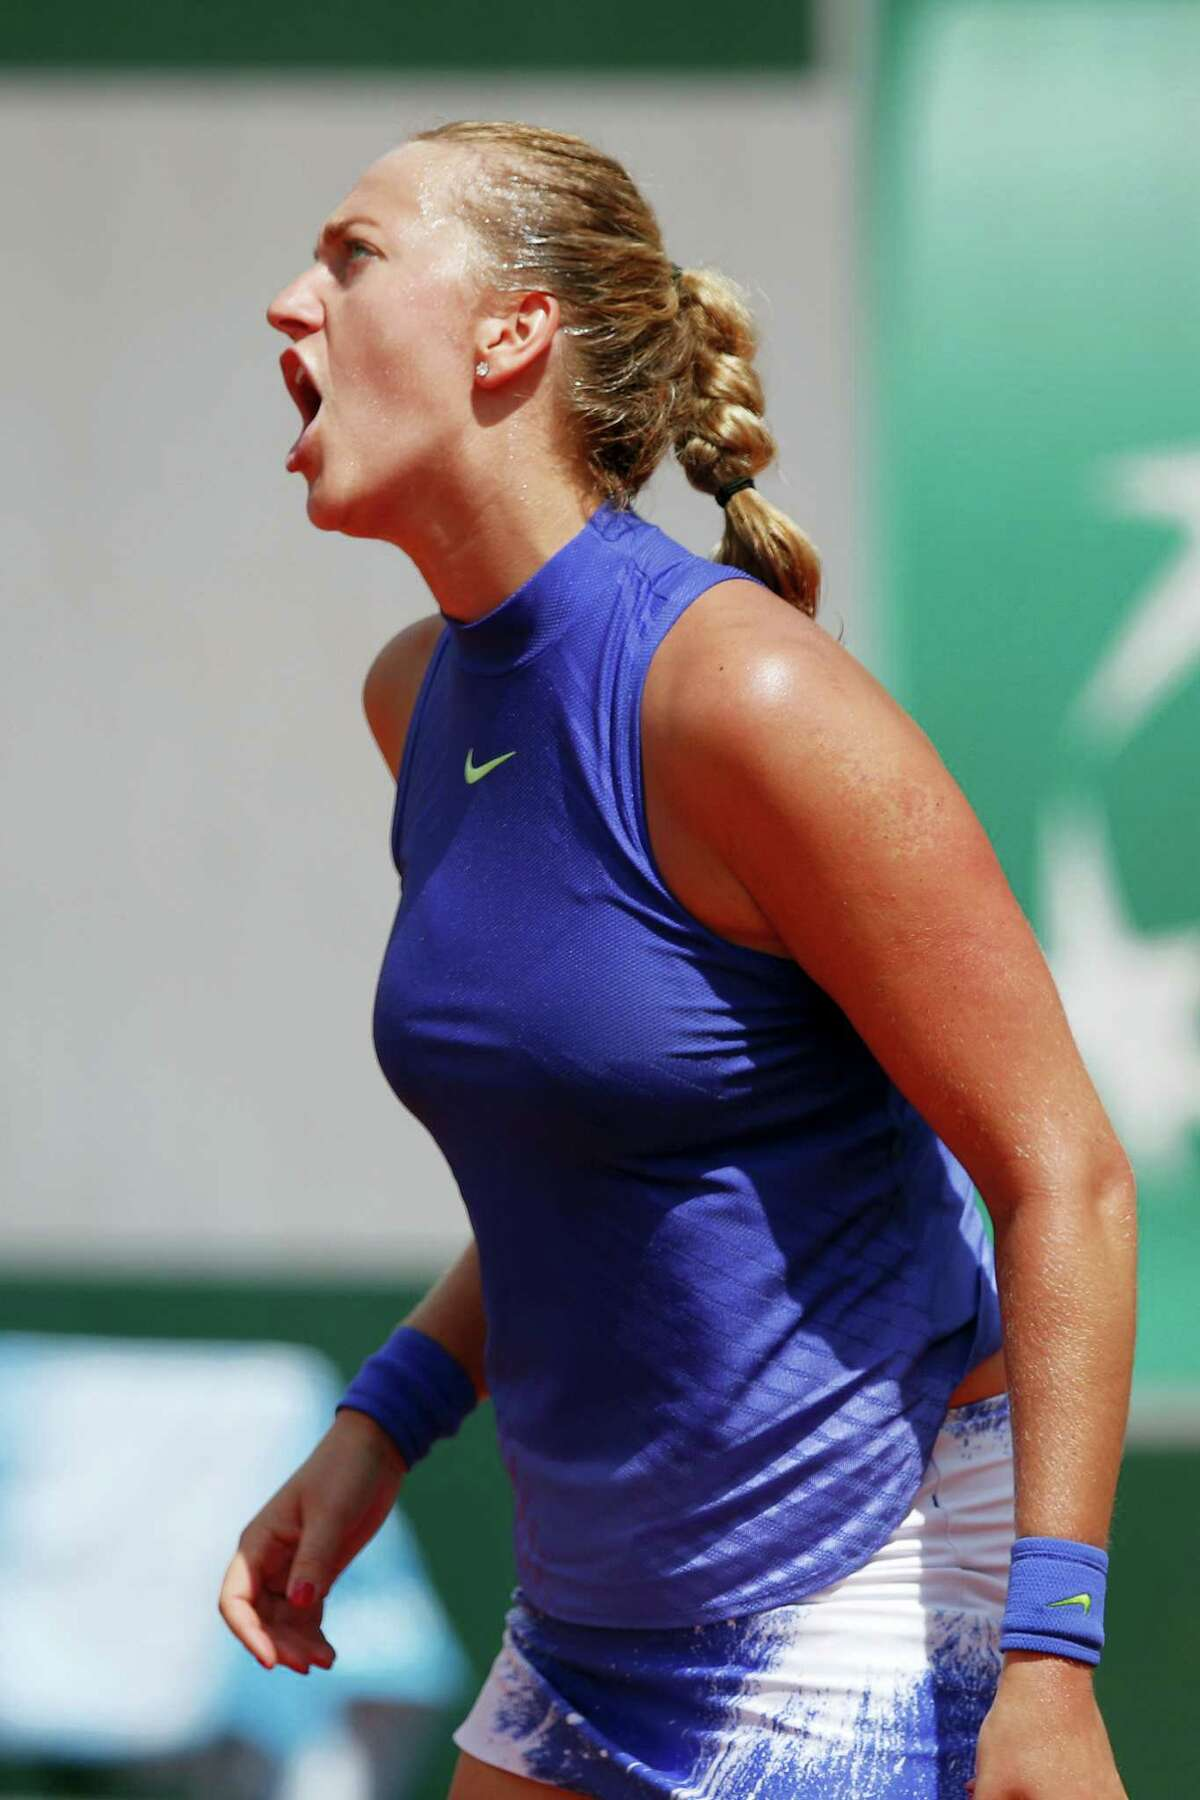 Petra Kvitova of the Czech Republic reacts after missing a shot against Bethanie Mattek-Sands of the U.S. during their second round match of the French Open tennis tournament at the Roland Garros stadium in Paris, France on May 31, 2017.